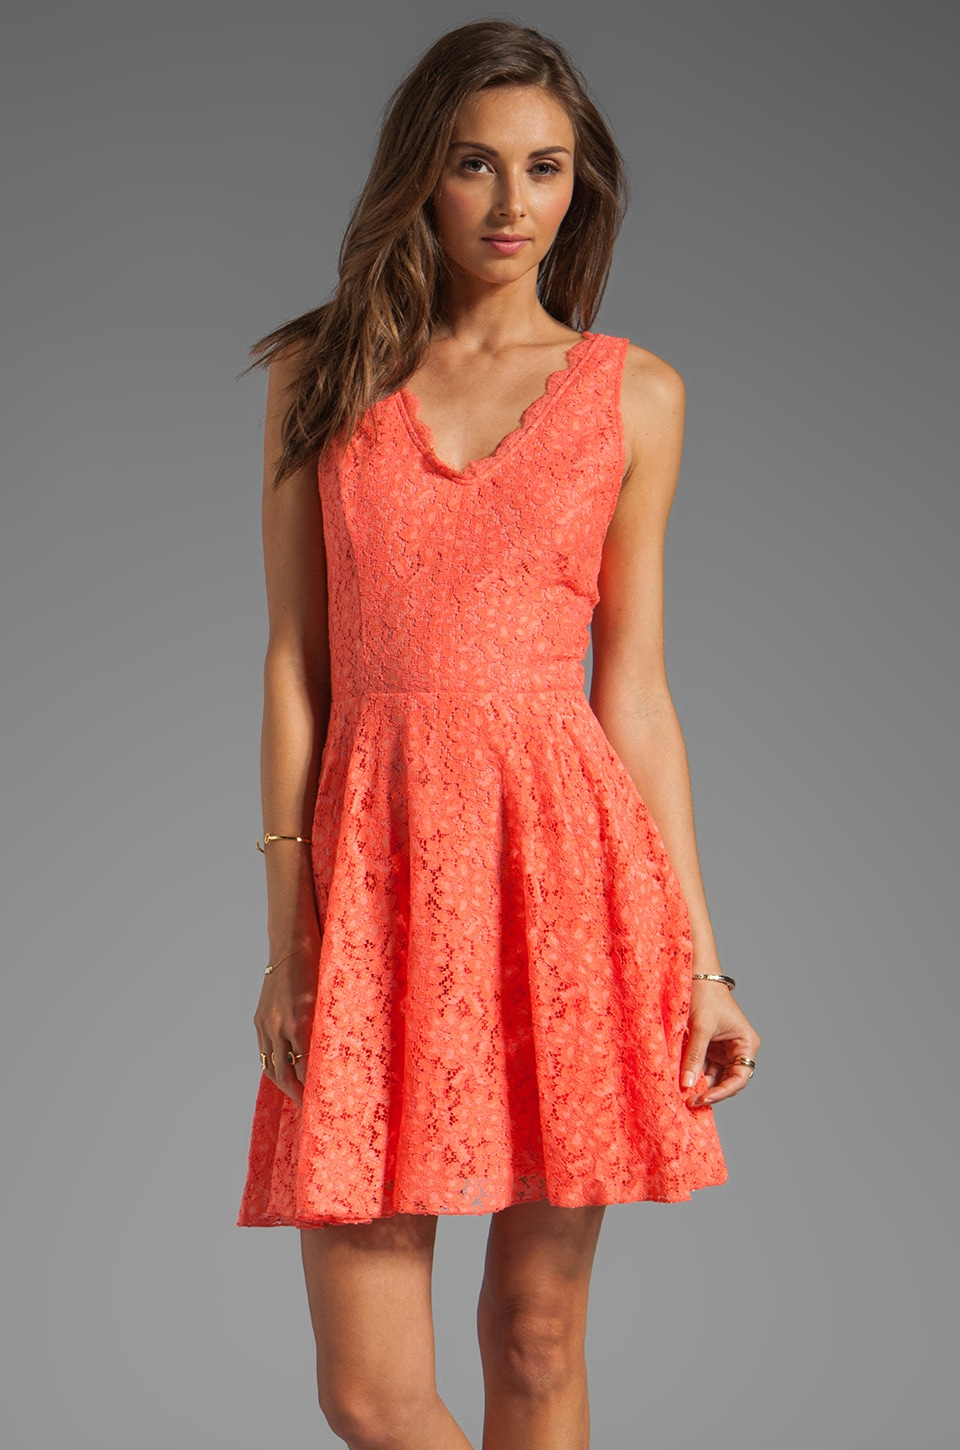 Dolce Vita Thereza Neon Lace Mini Dress in Melon